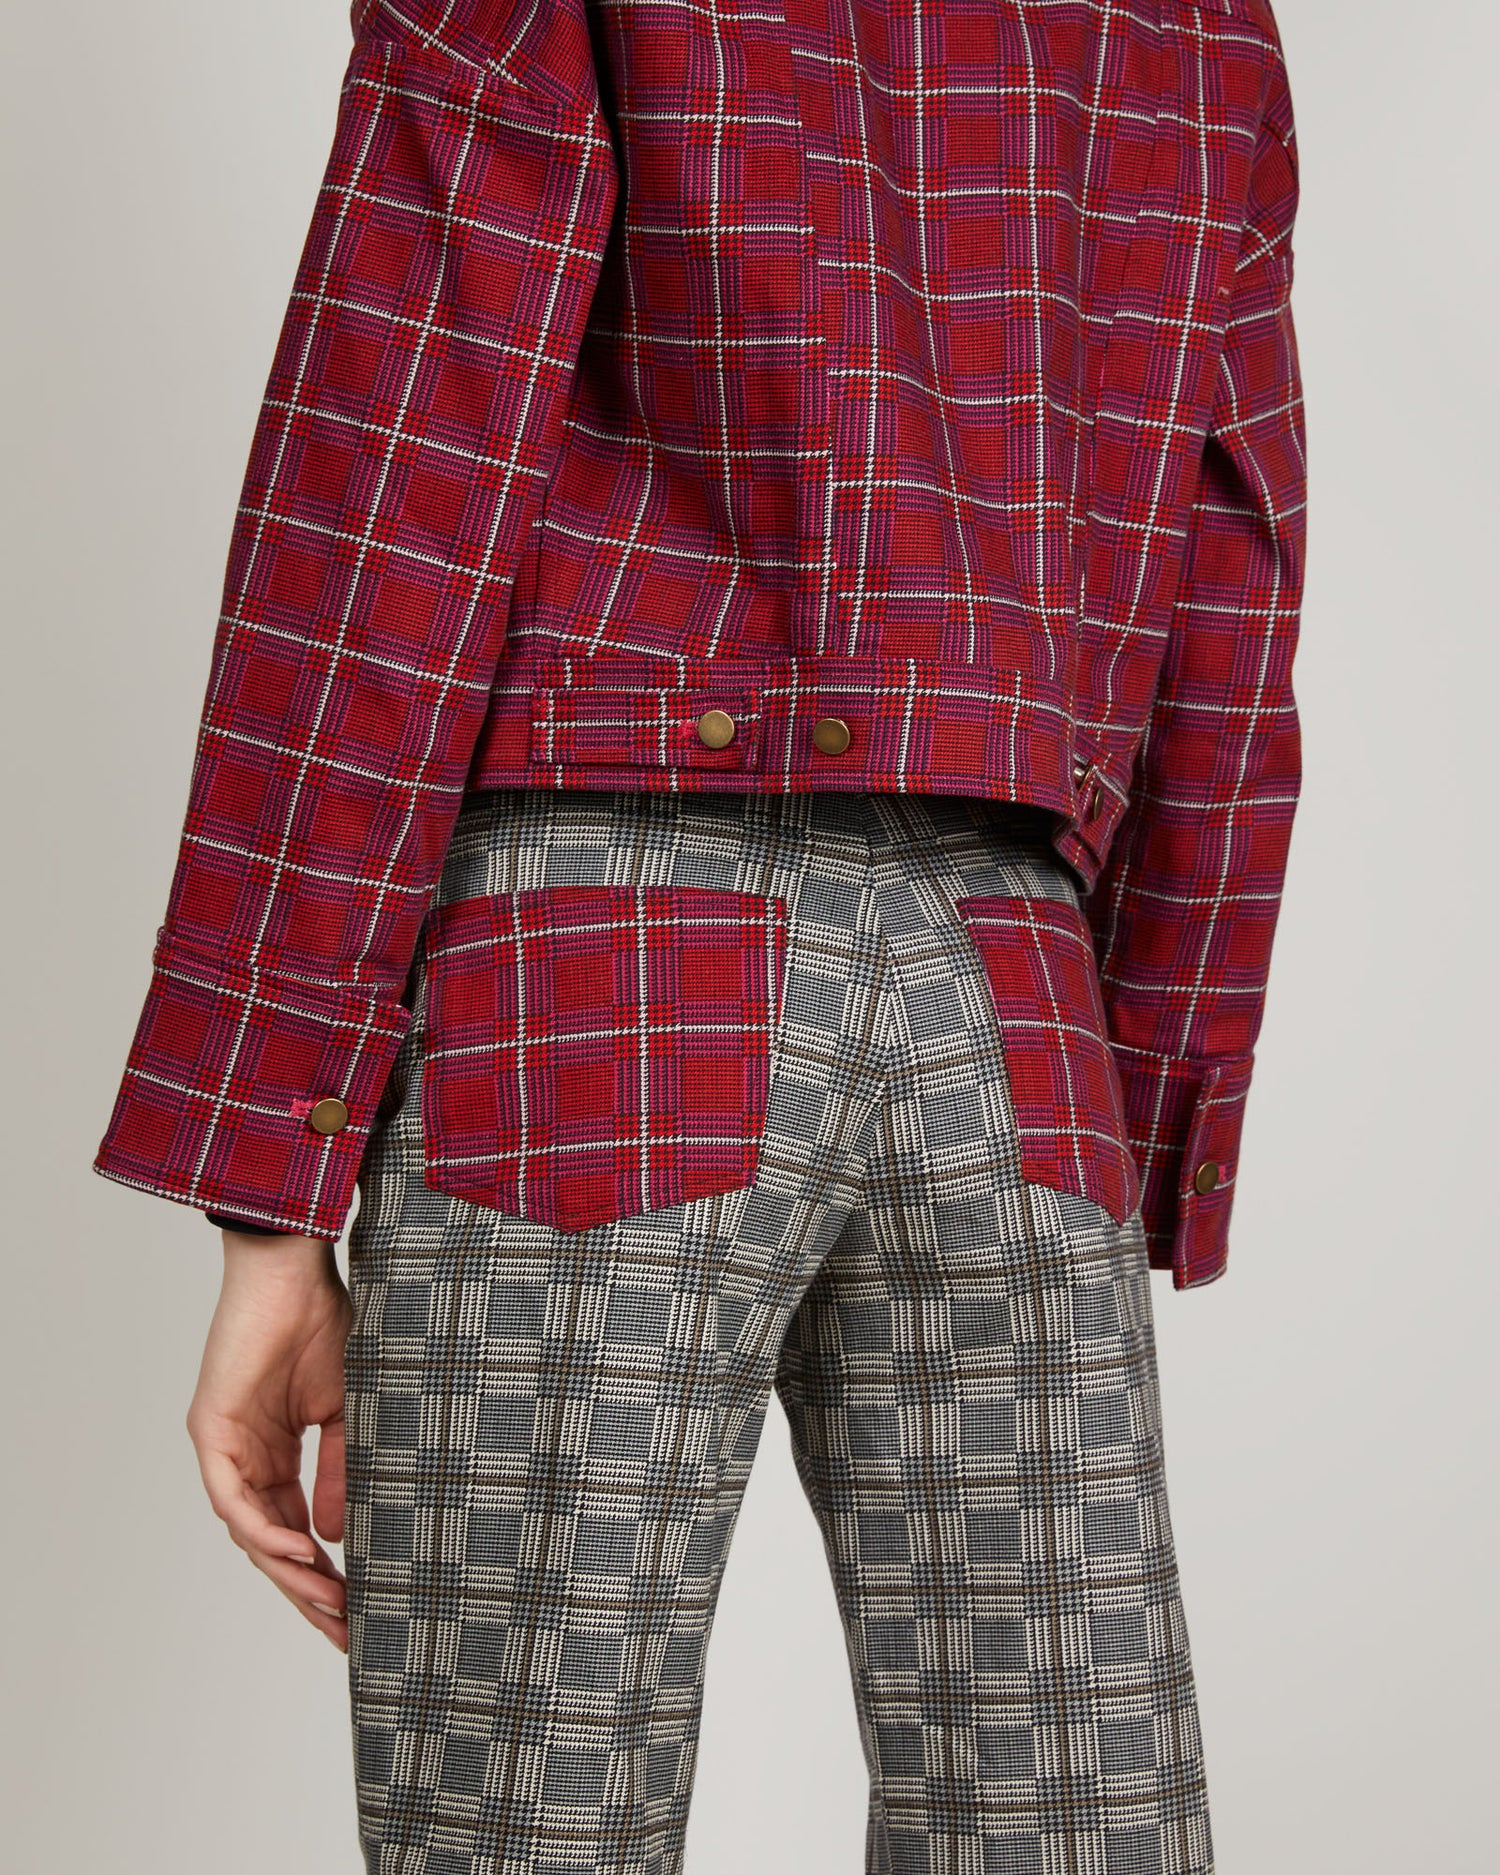 Cropped Alexa Jean | Tan Glen Plaid